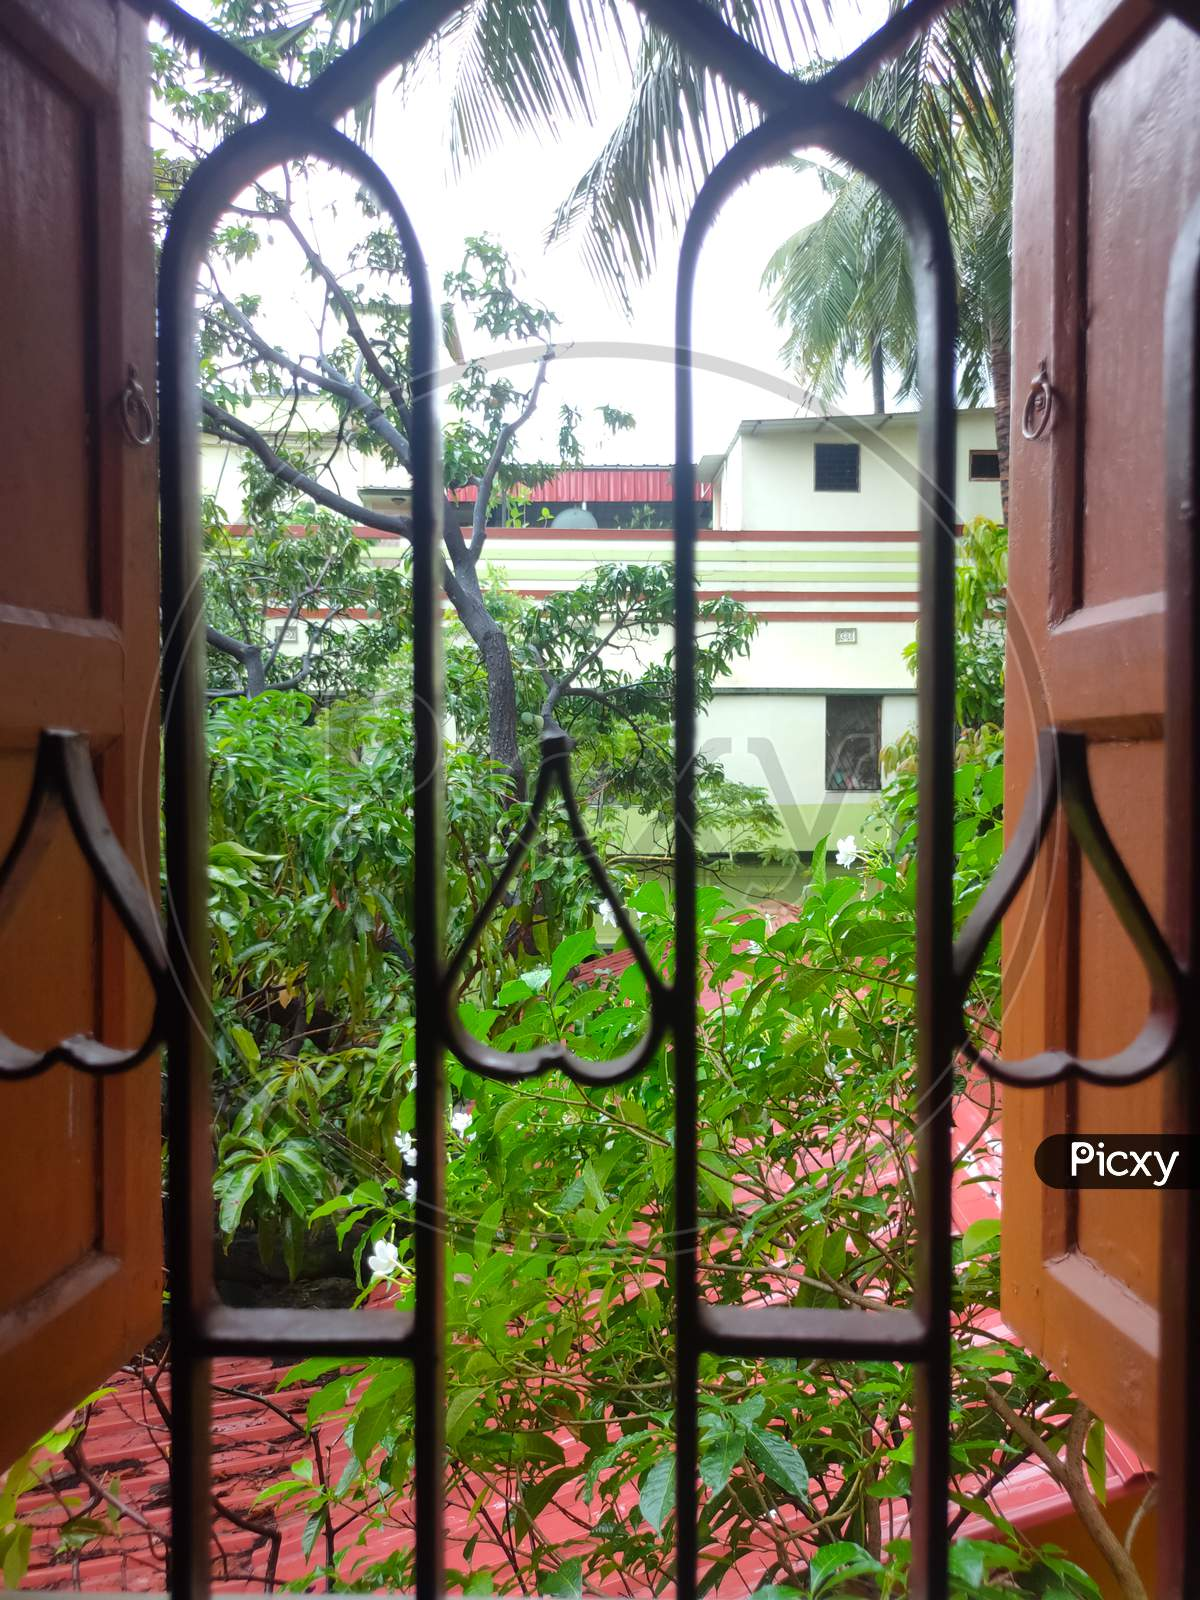 A Small Garden From A Window View During Amphan Cyclone